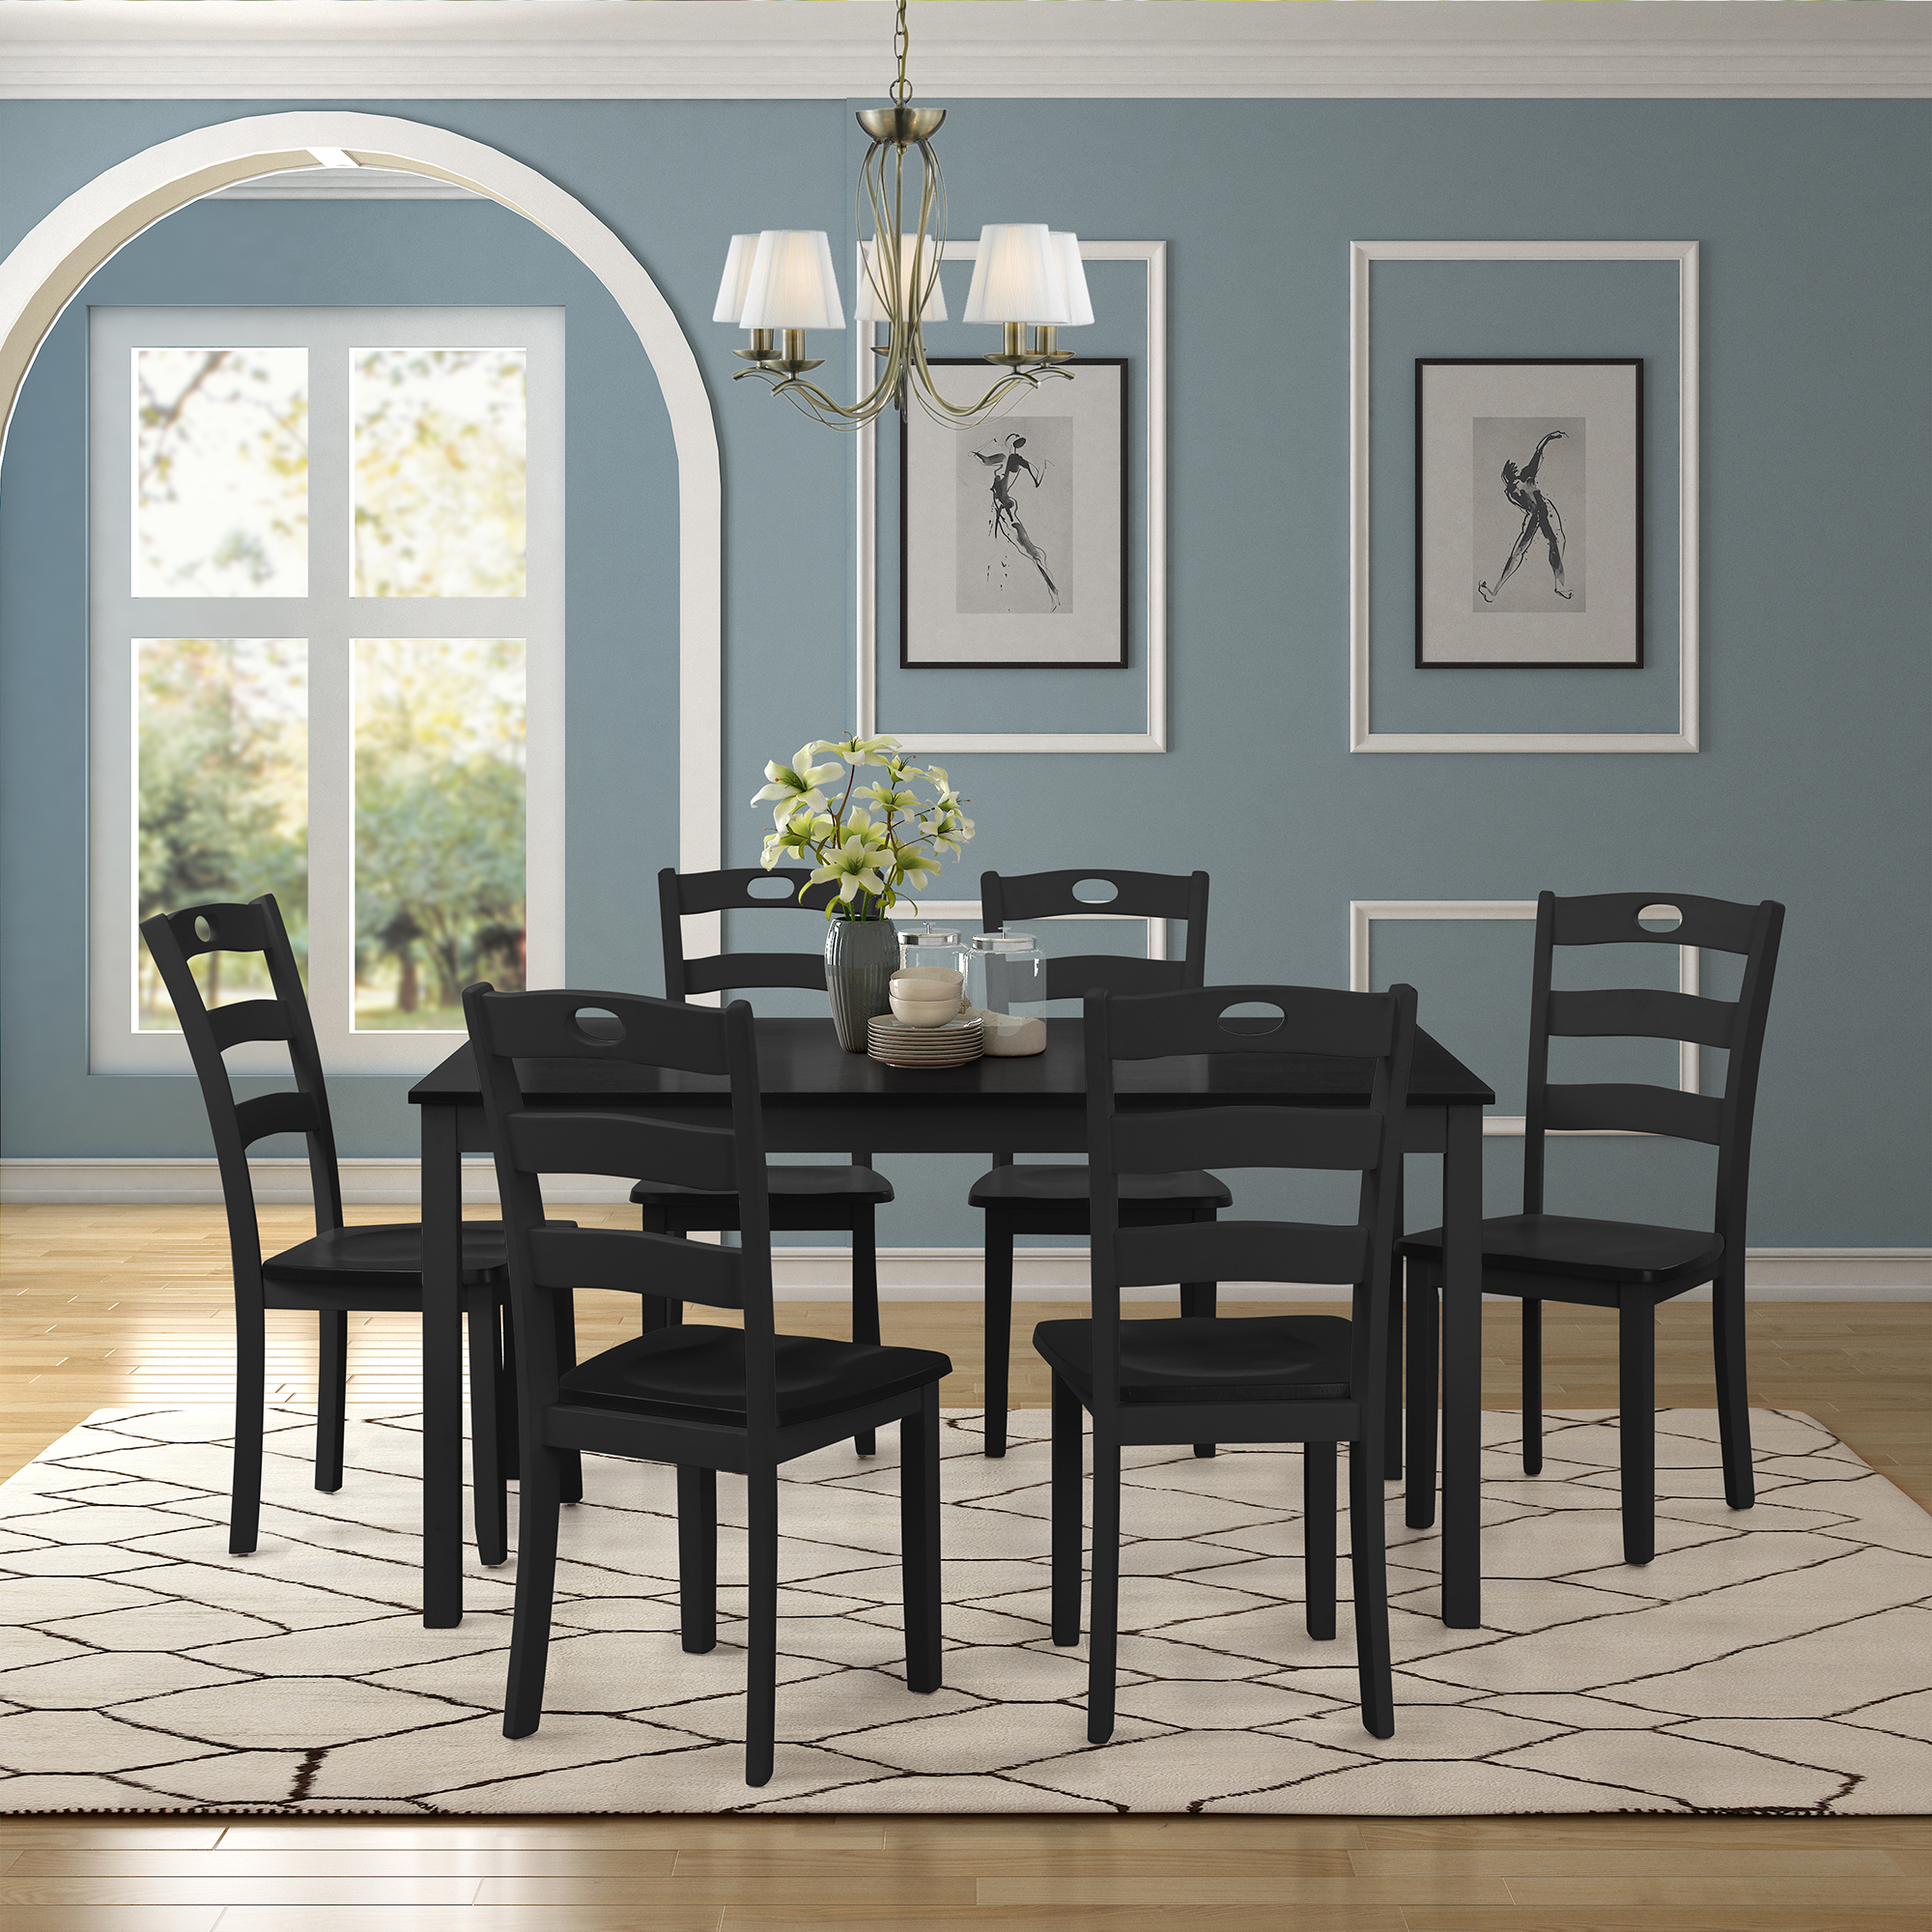 Dining Room Sets Clearance: Clearance! Dining Table Set With 6 Chairs, 7 Piece Wooden